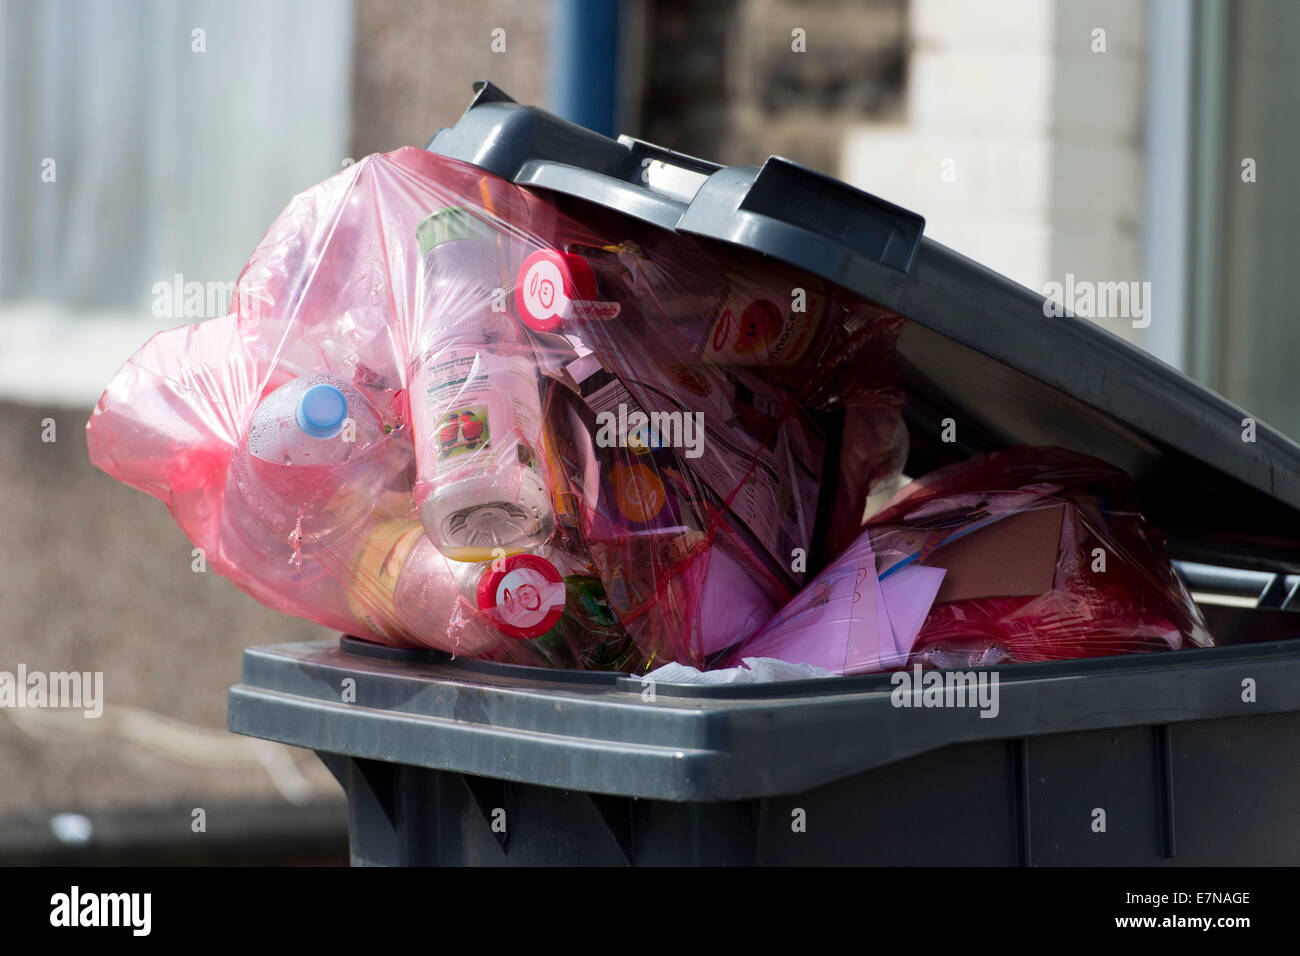 An overloaded green recycling bin full of rubbish in Cardiff, South Wales. - Stock Image